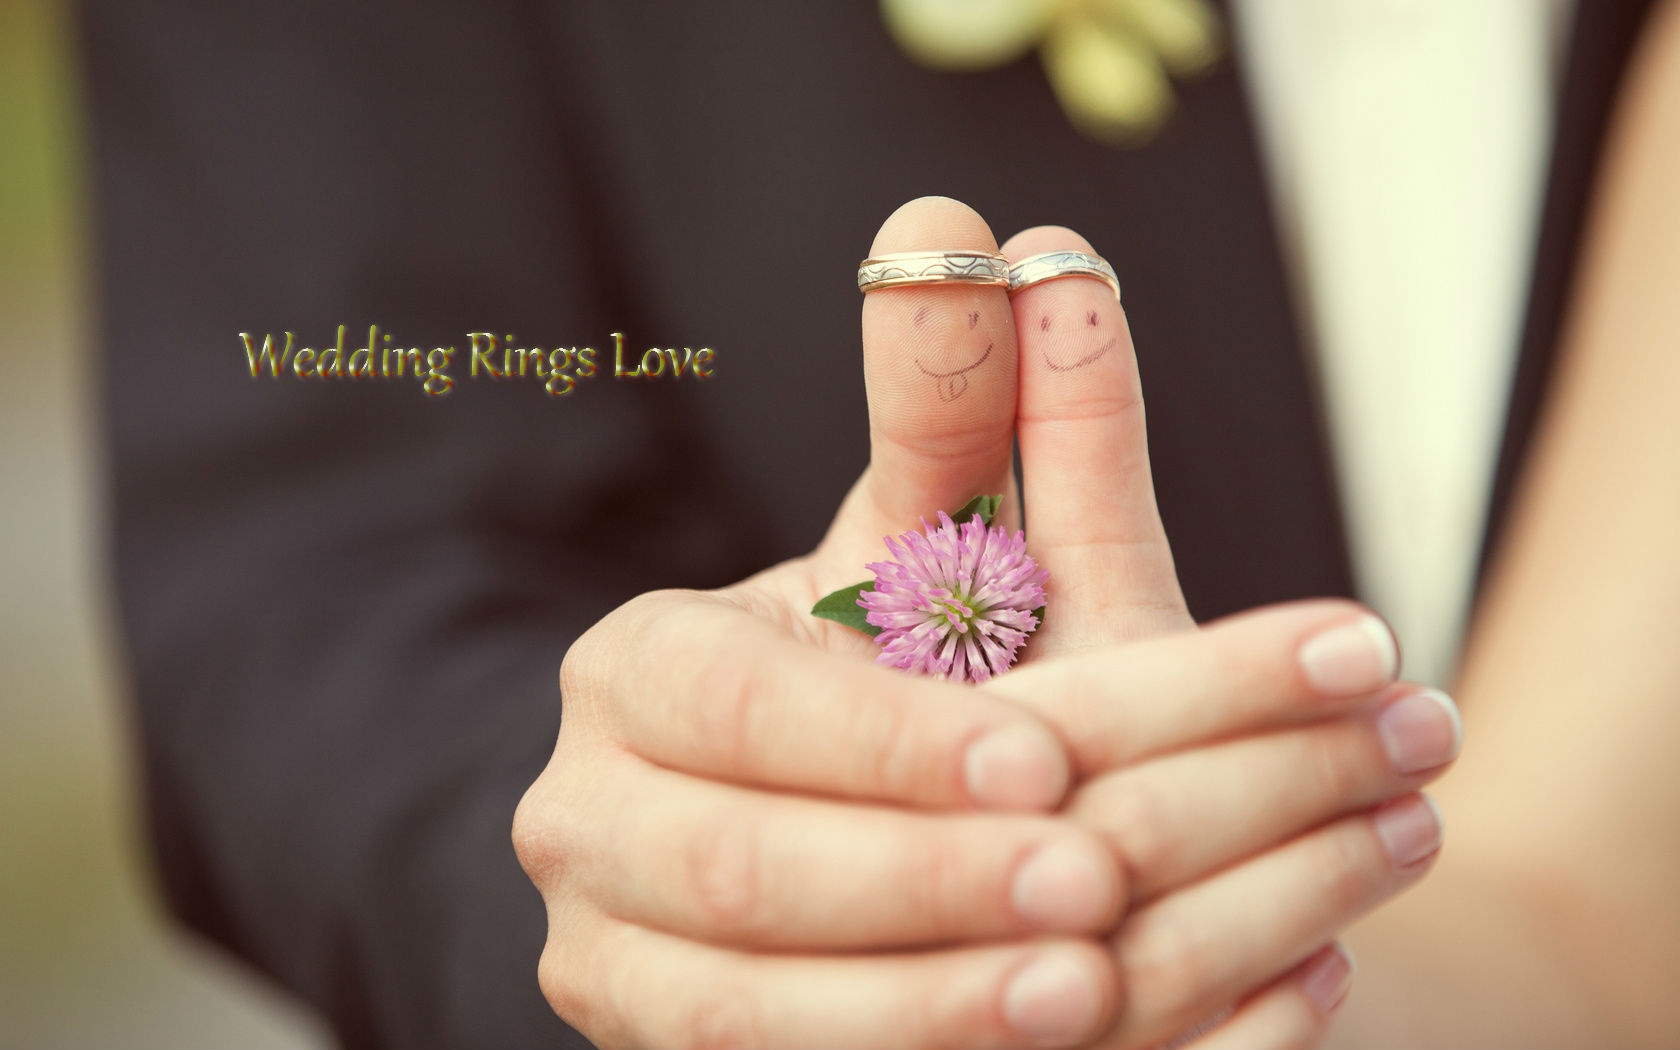 Love Wallpaper Ring : Wedding Rings Love Wallpapers - 1680x1050 - 199623